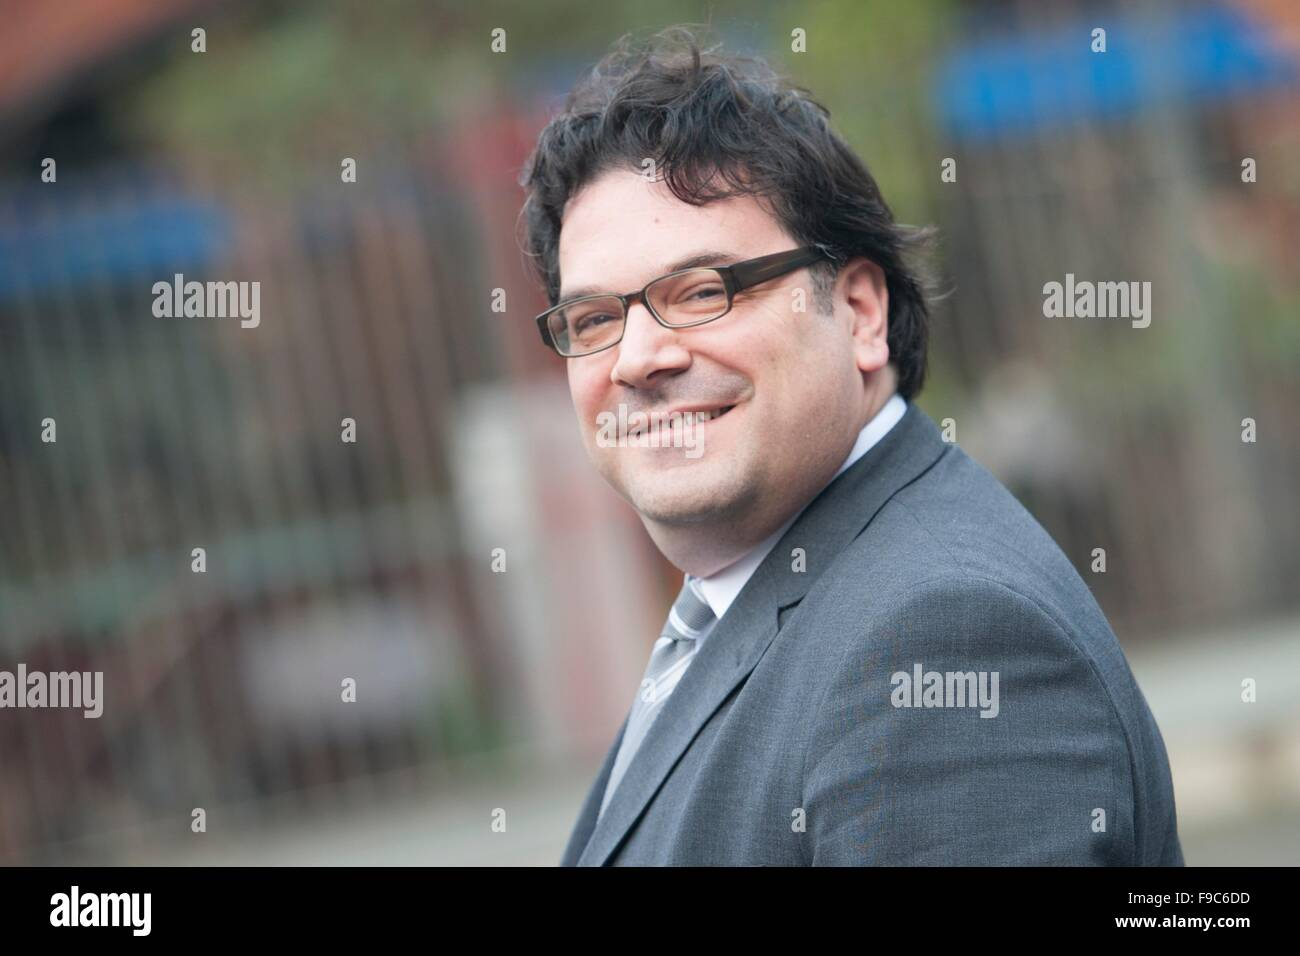 Berlin, Germany. 9th Dec, 2015. The chairman of the Jewish Parish in Berlin, Gideon Joffe, smiles as he is pictured - Stock Image